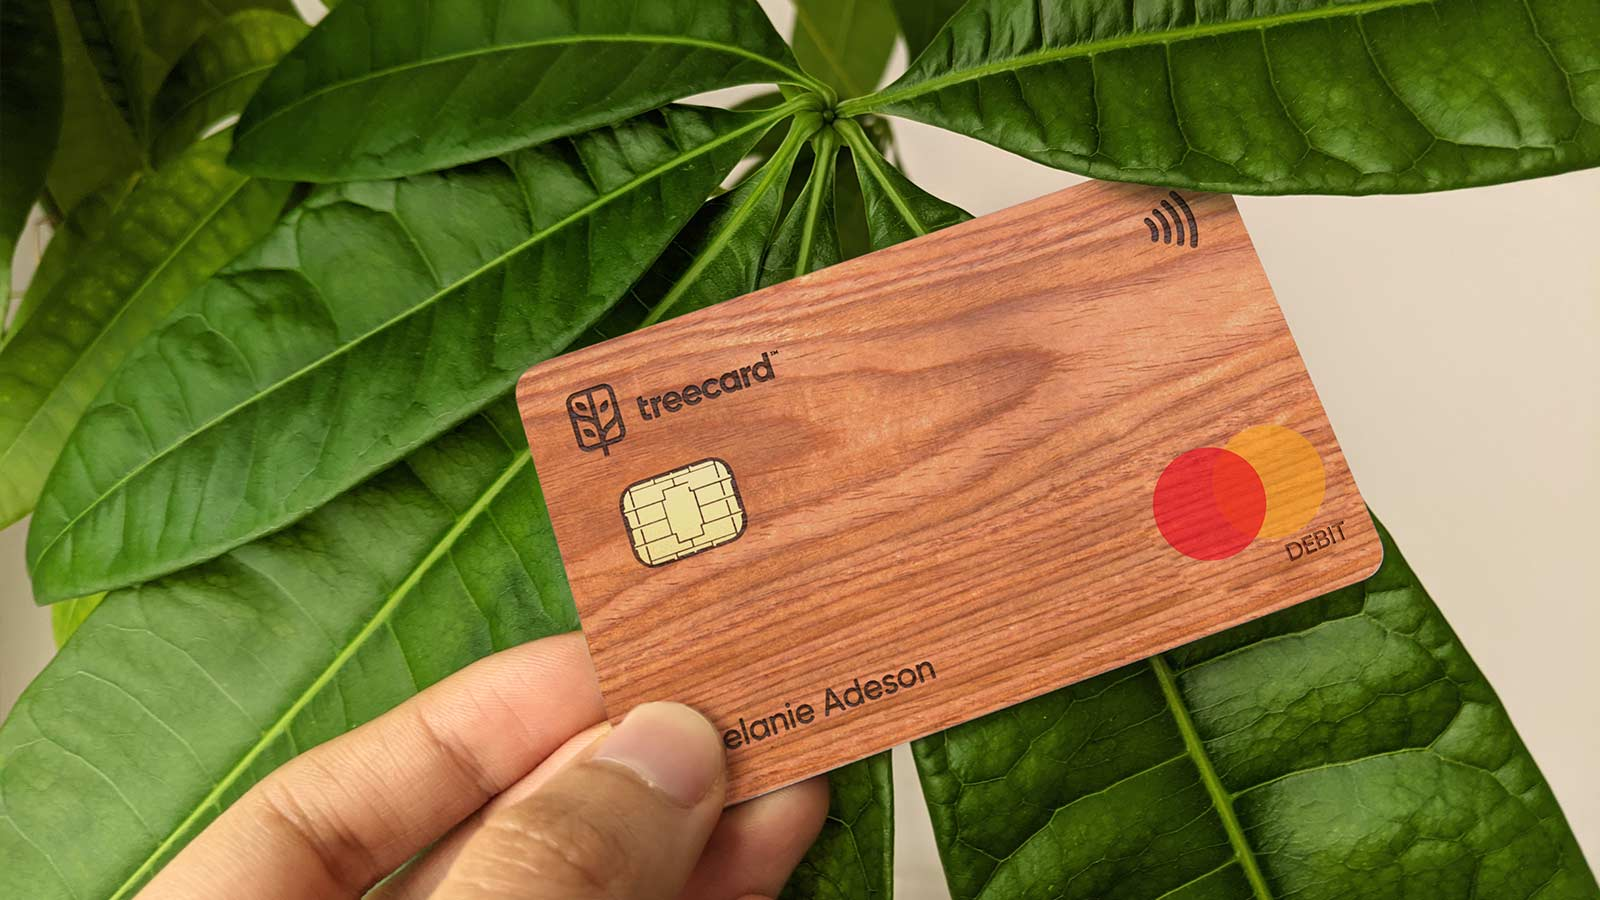 Treecard's wooden debit card allows you to plant trees while you spend.